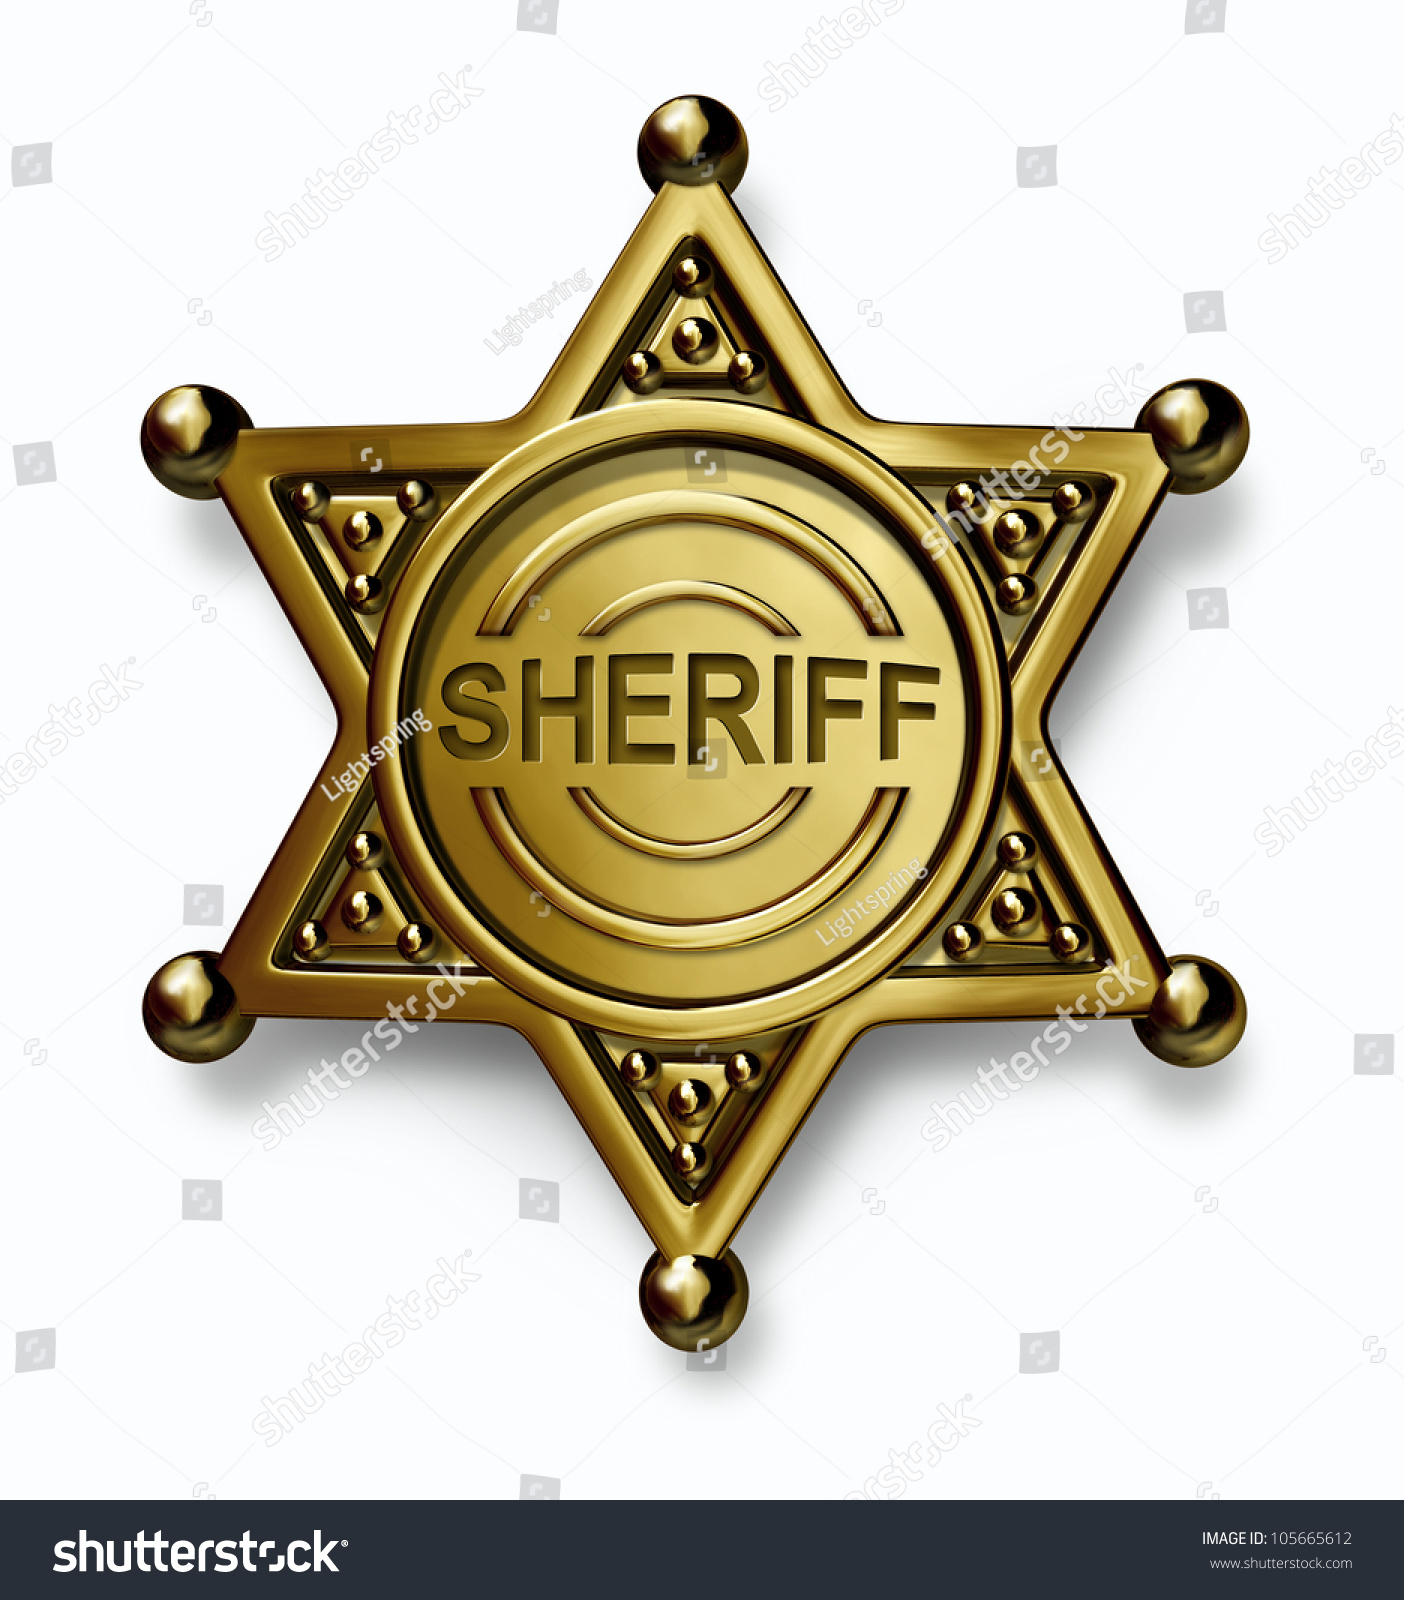 law enforcement symbols - photo #20